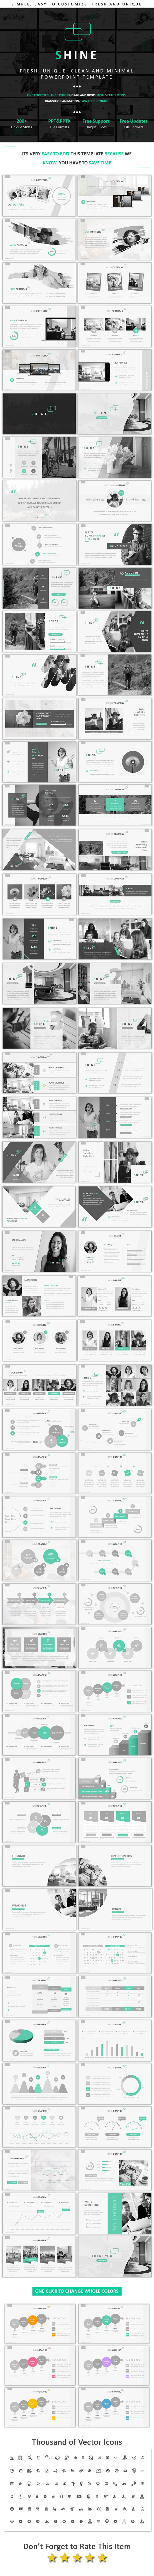 Shine Ultimate Powerpoint - Business PowerPoint Templates